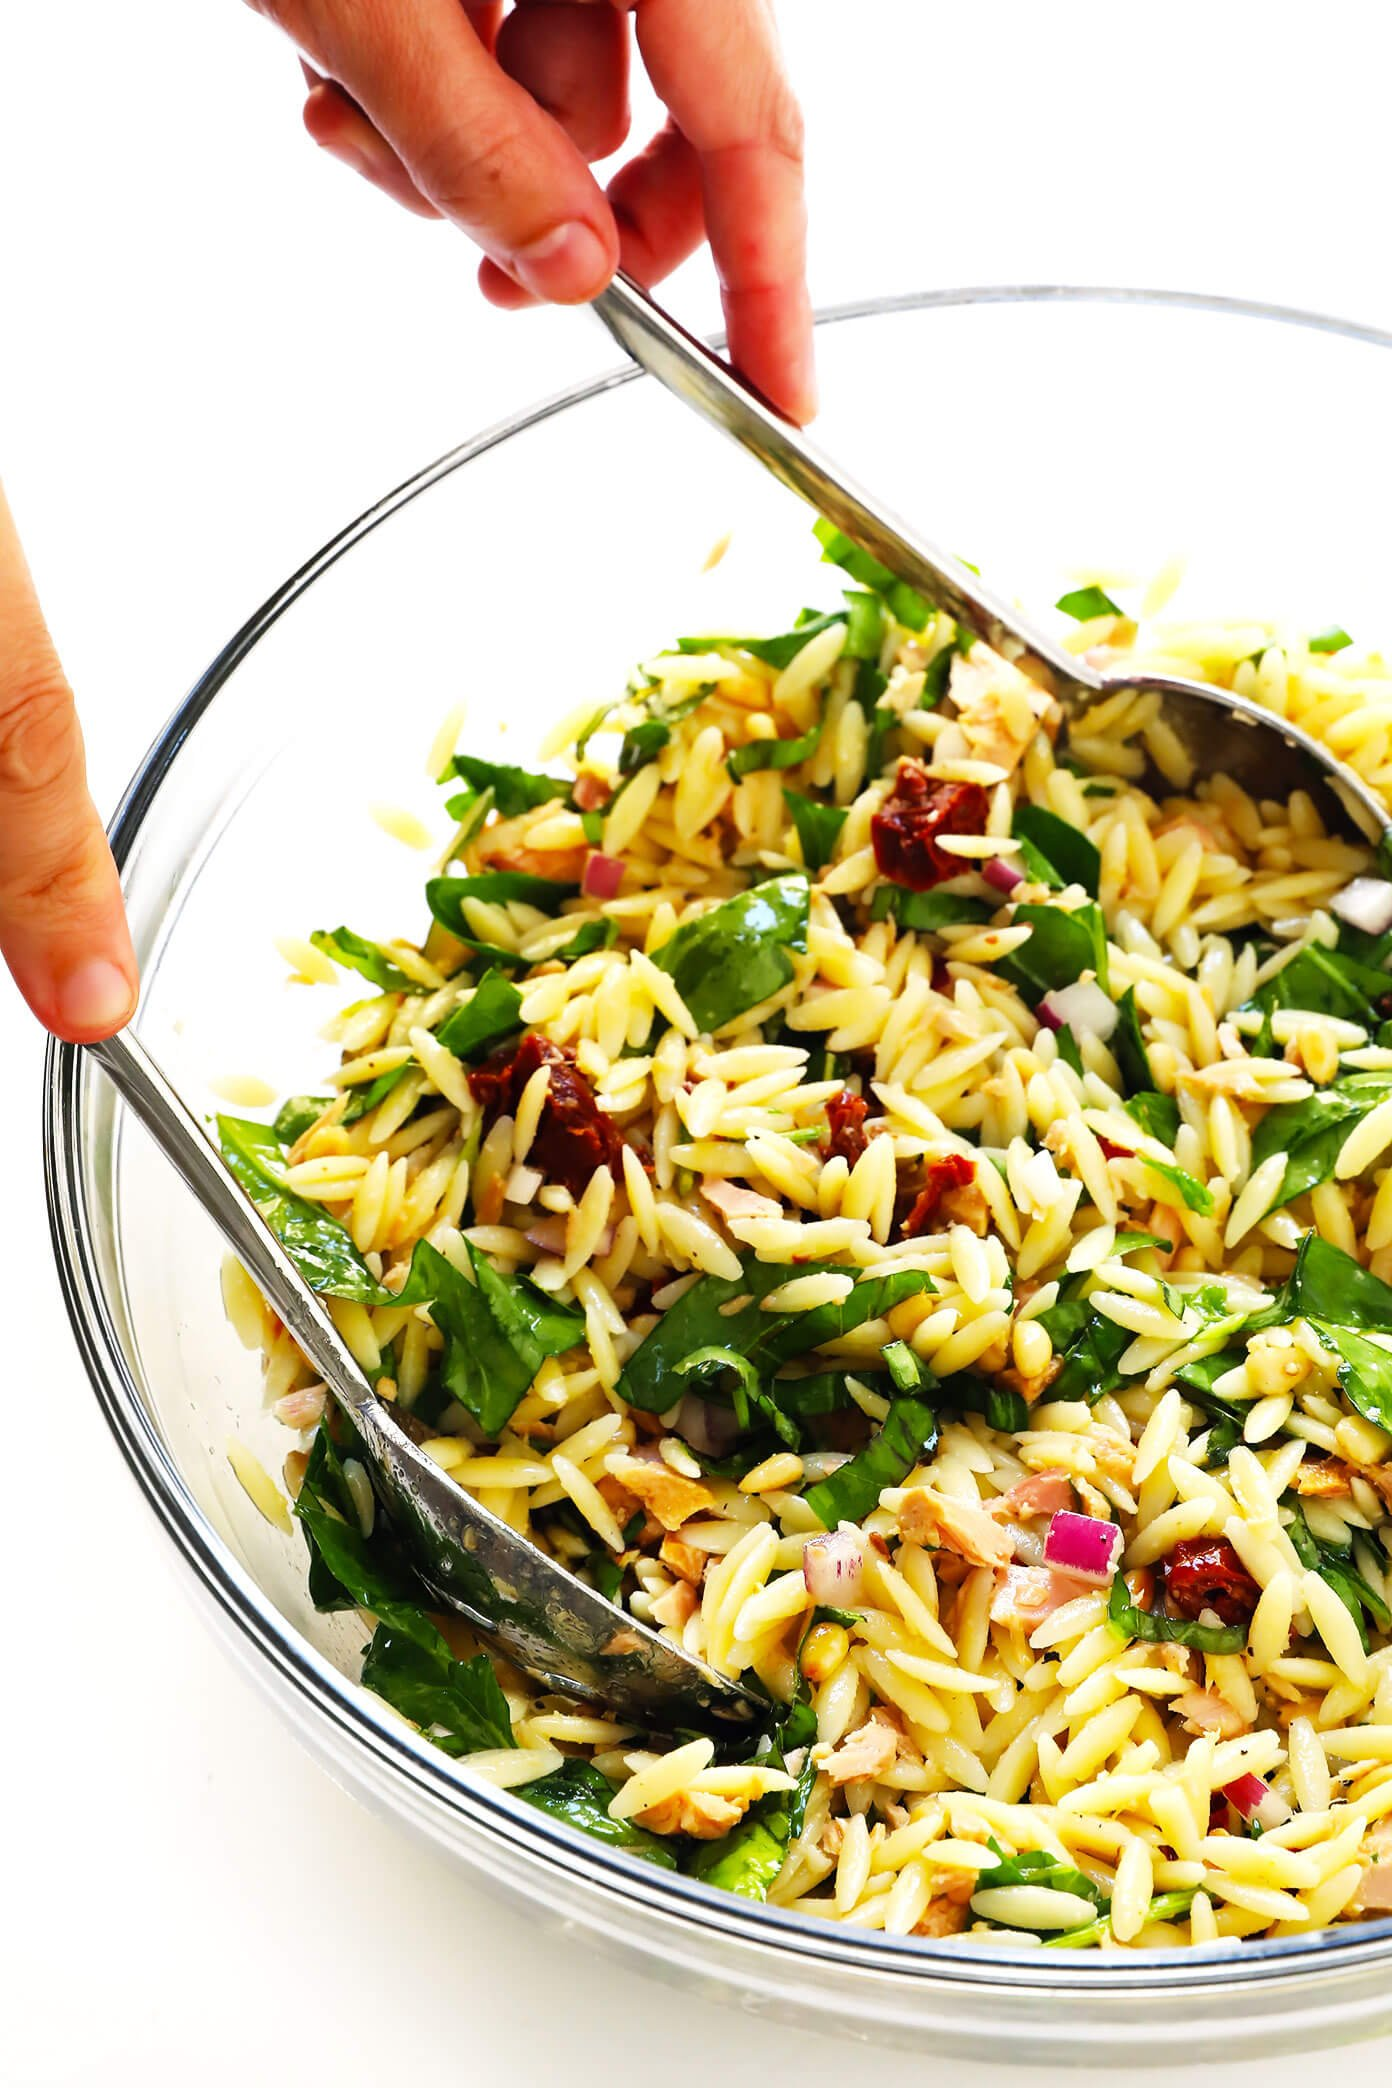 How To Make Italian Orzo Tuna Salad